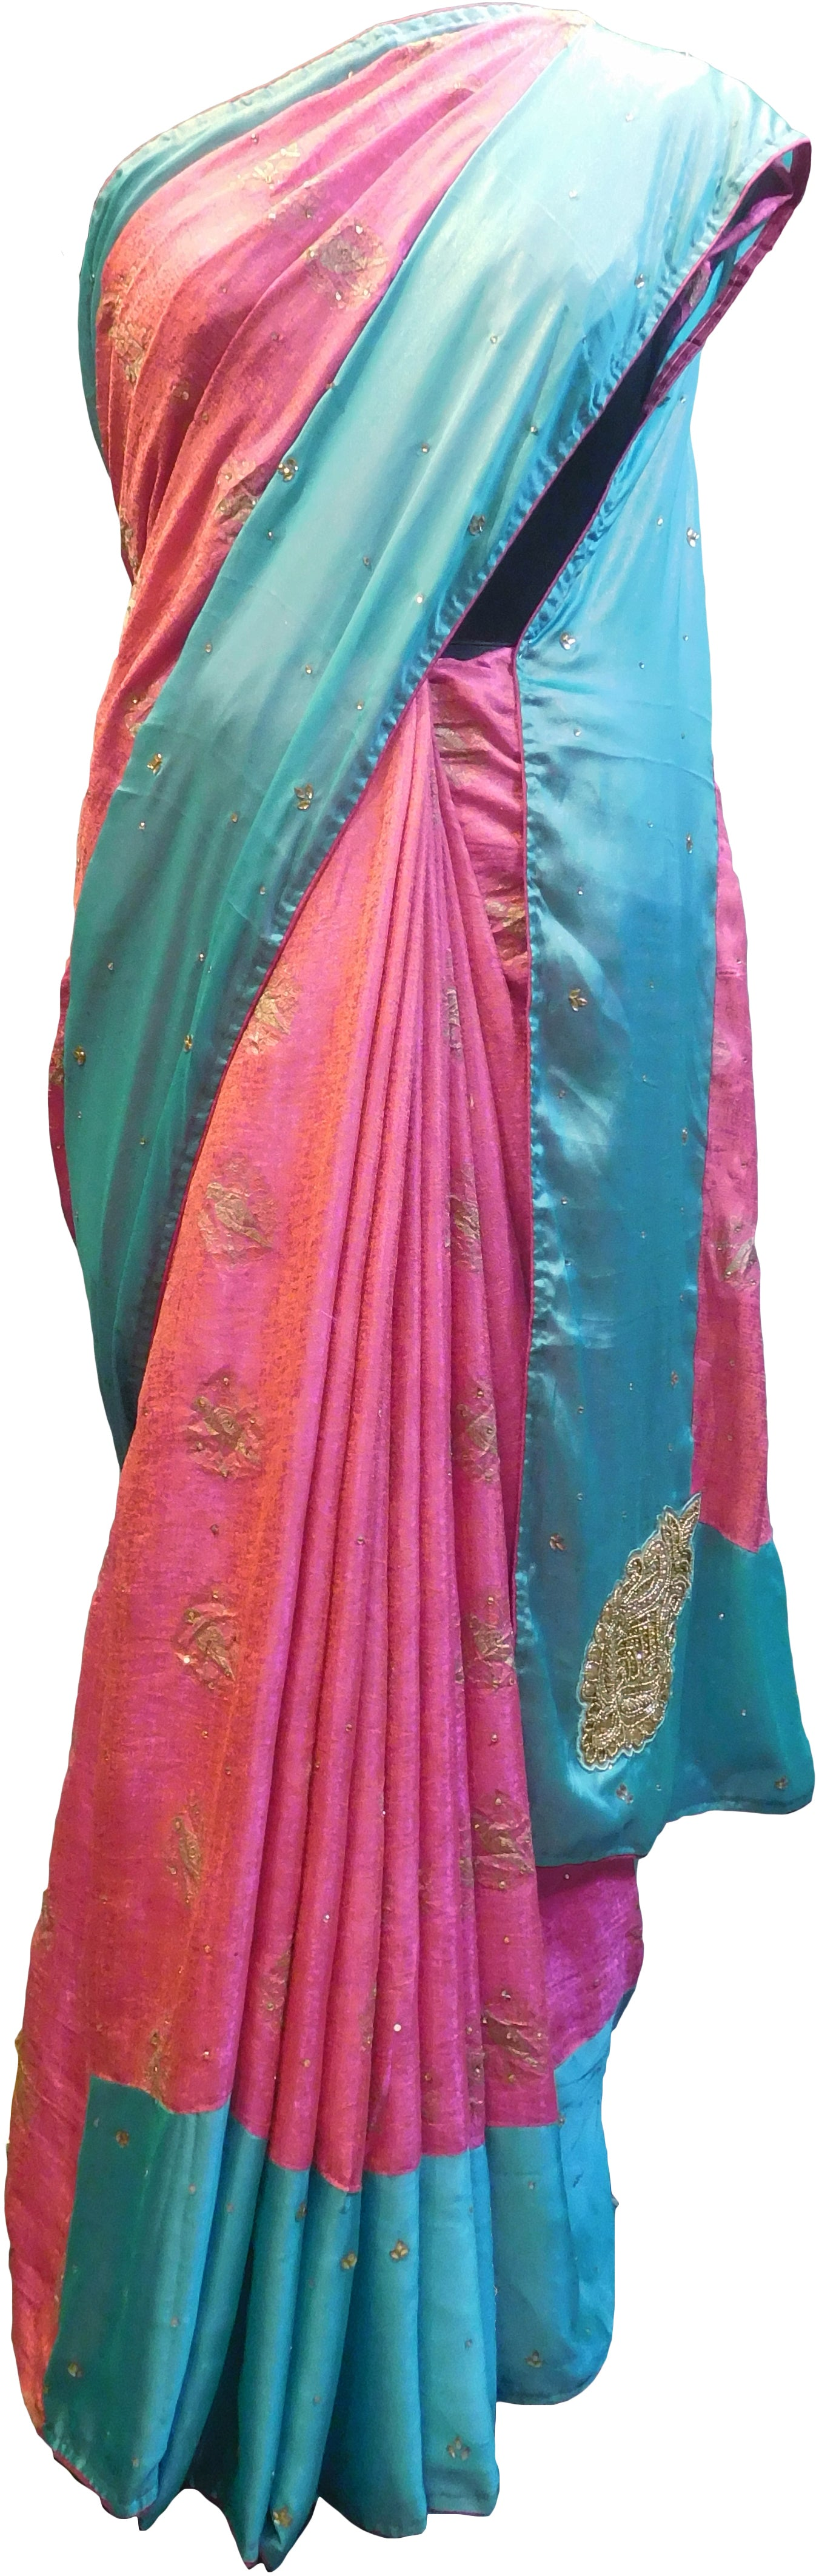 SMSAREE Pink & Turquoise Designer Wedding Partywear Silk Pearl Beads Bullion & Stone Hand Embroidery Work Bridal Saree Sari With Blouse Piece E965